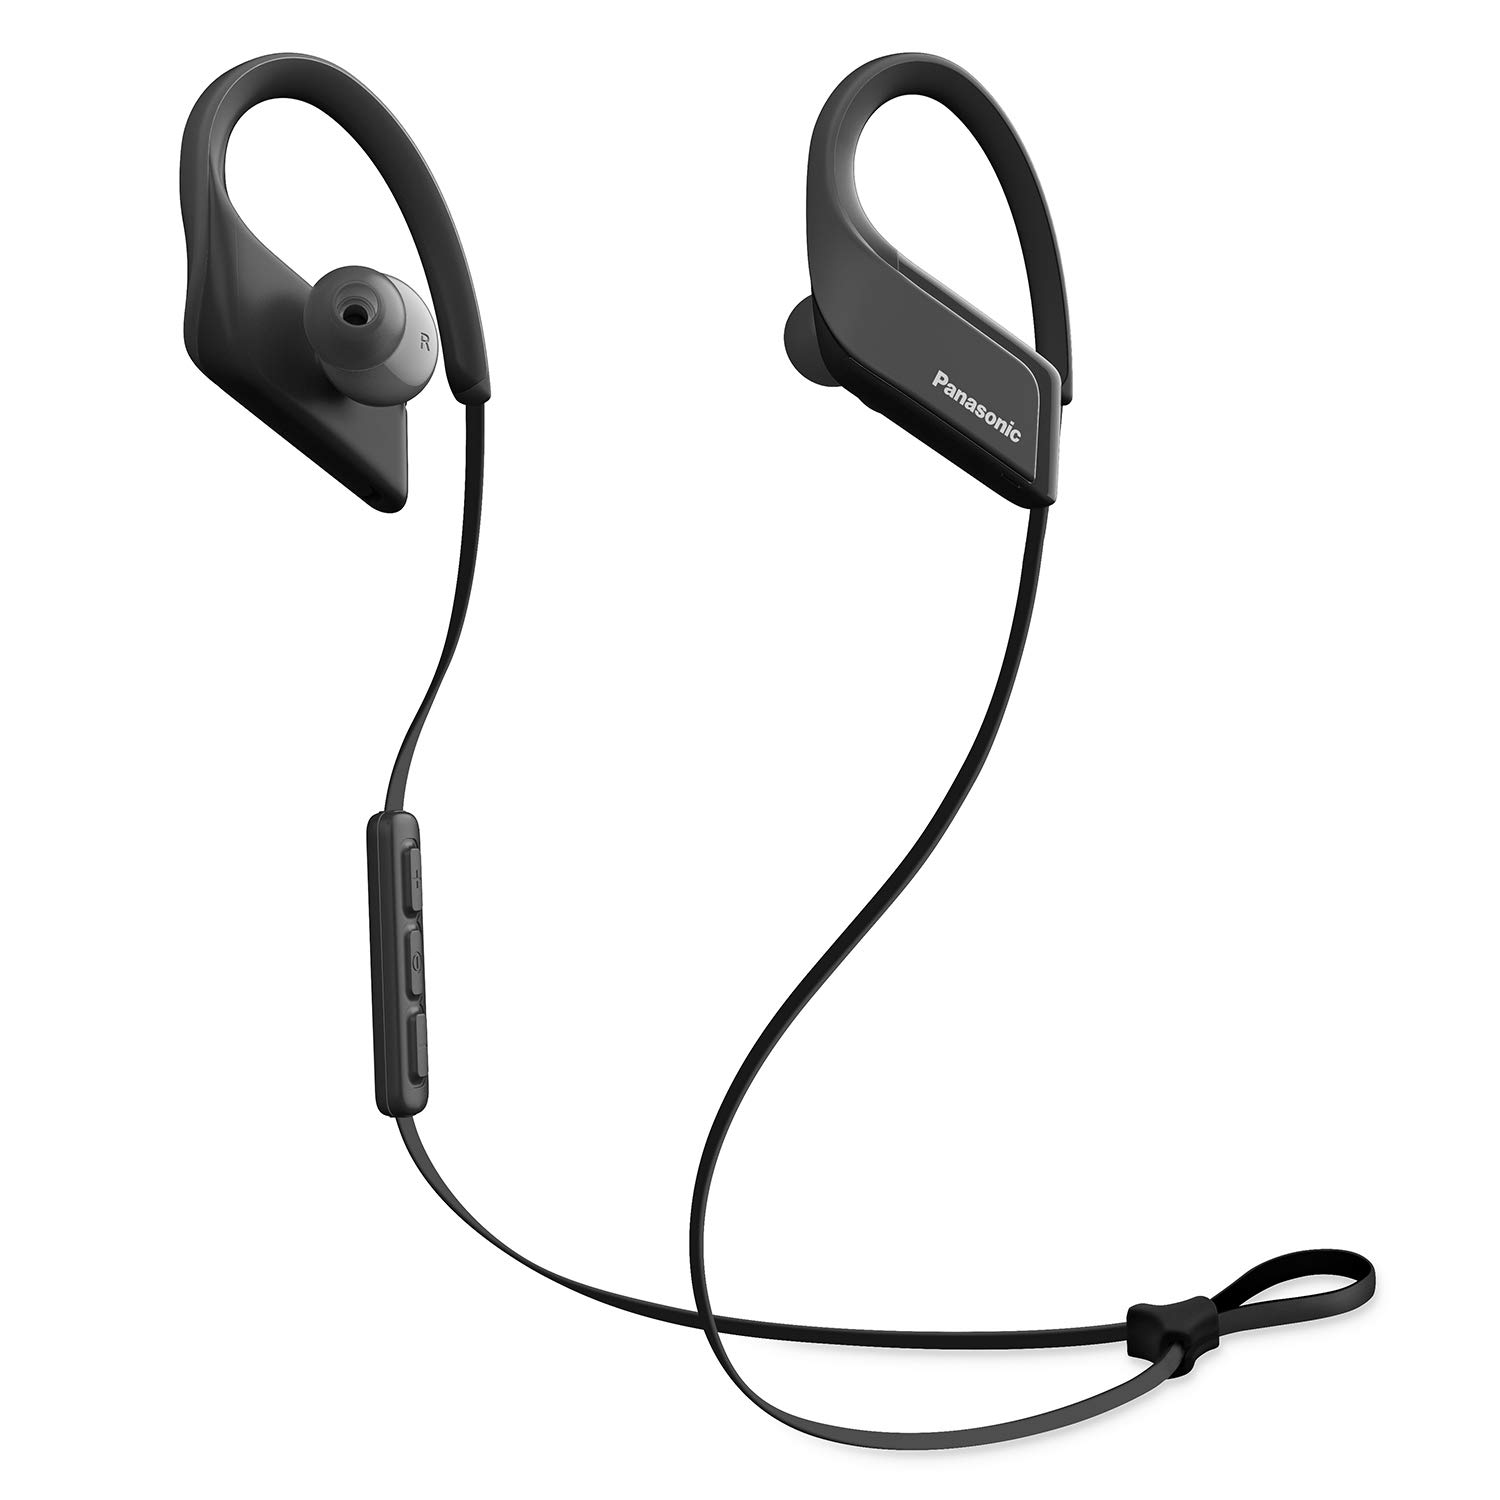 PANASONIC Wings Sport Headphones are Ultra-Light Wireless Bluetooth Sport Earbud 3D Flex Sport Clips with Microphone and Call/Volume Controller, IPX5 Rated Water-Resistant - RP-BTS35-K (Black)